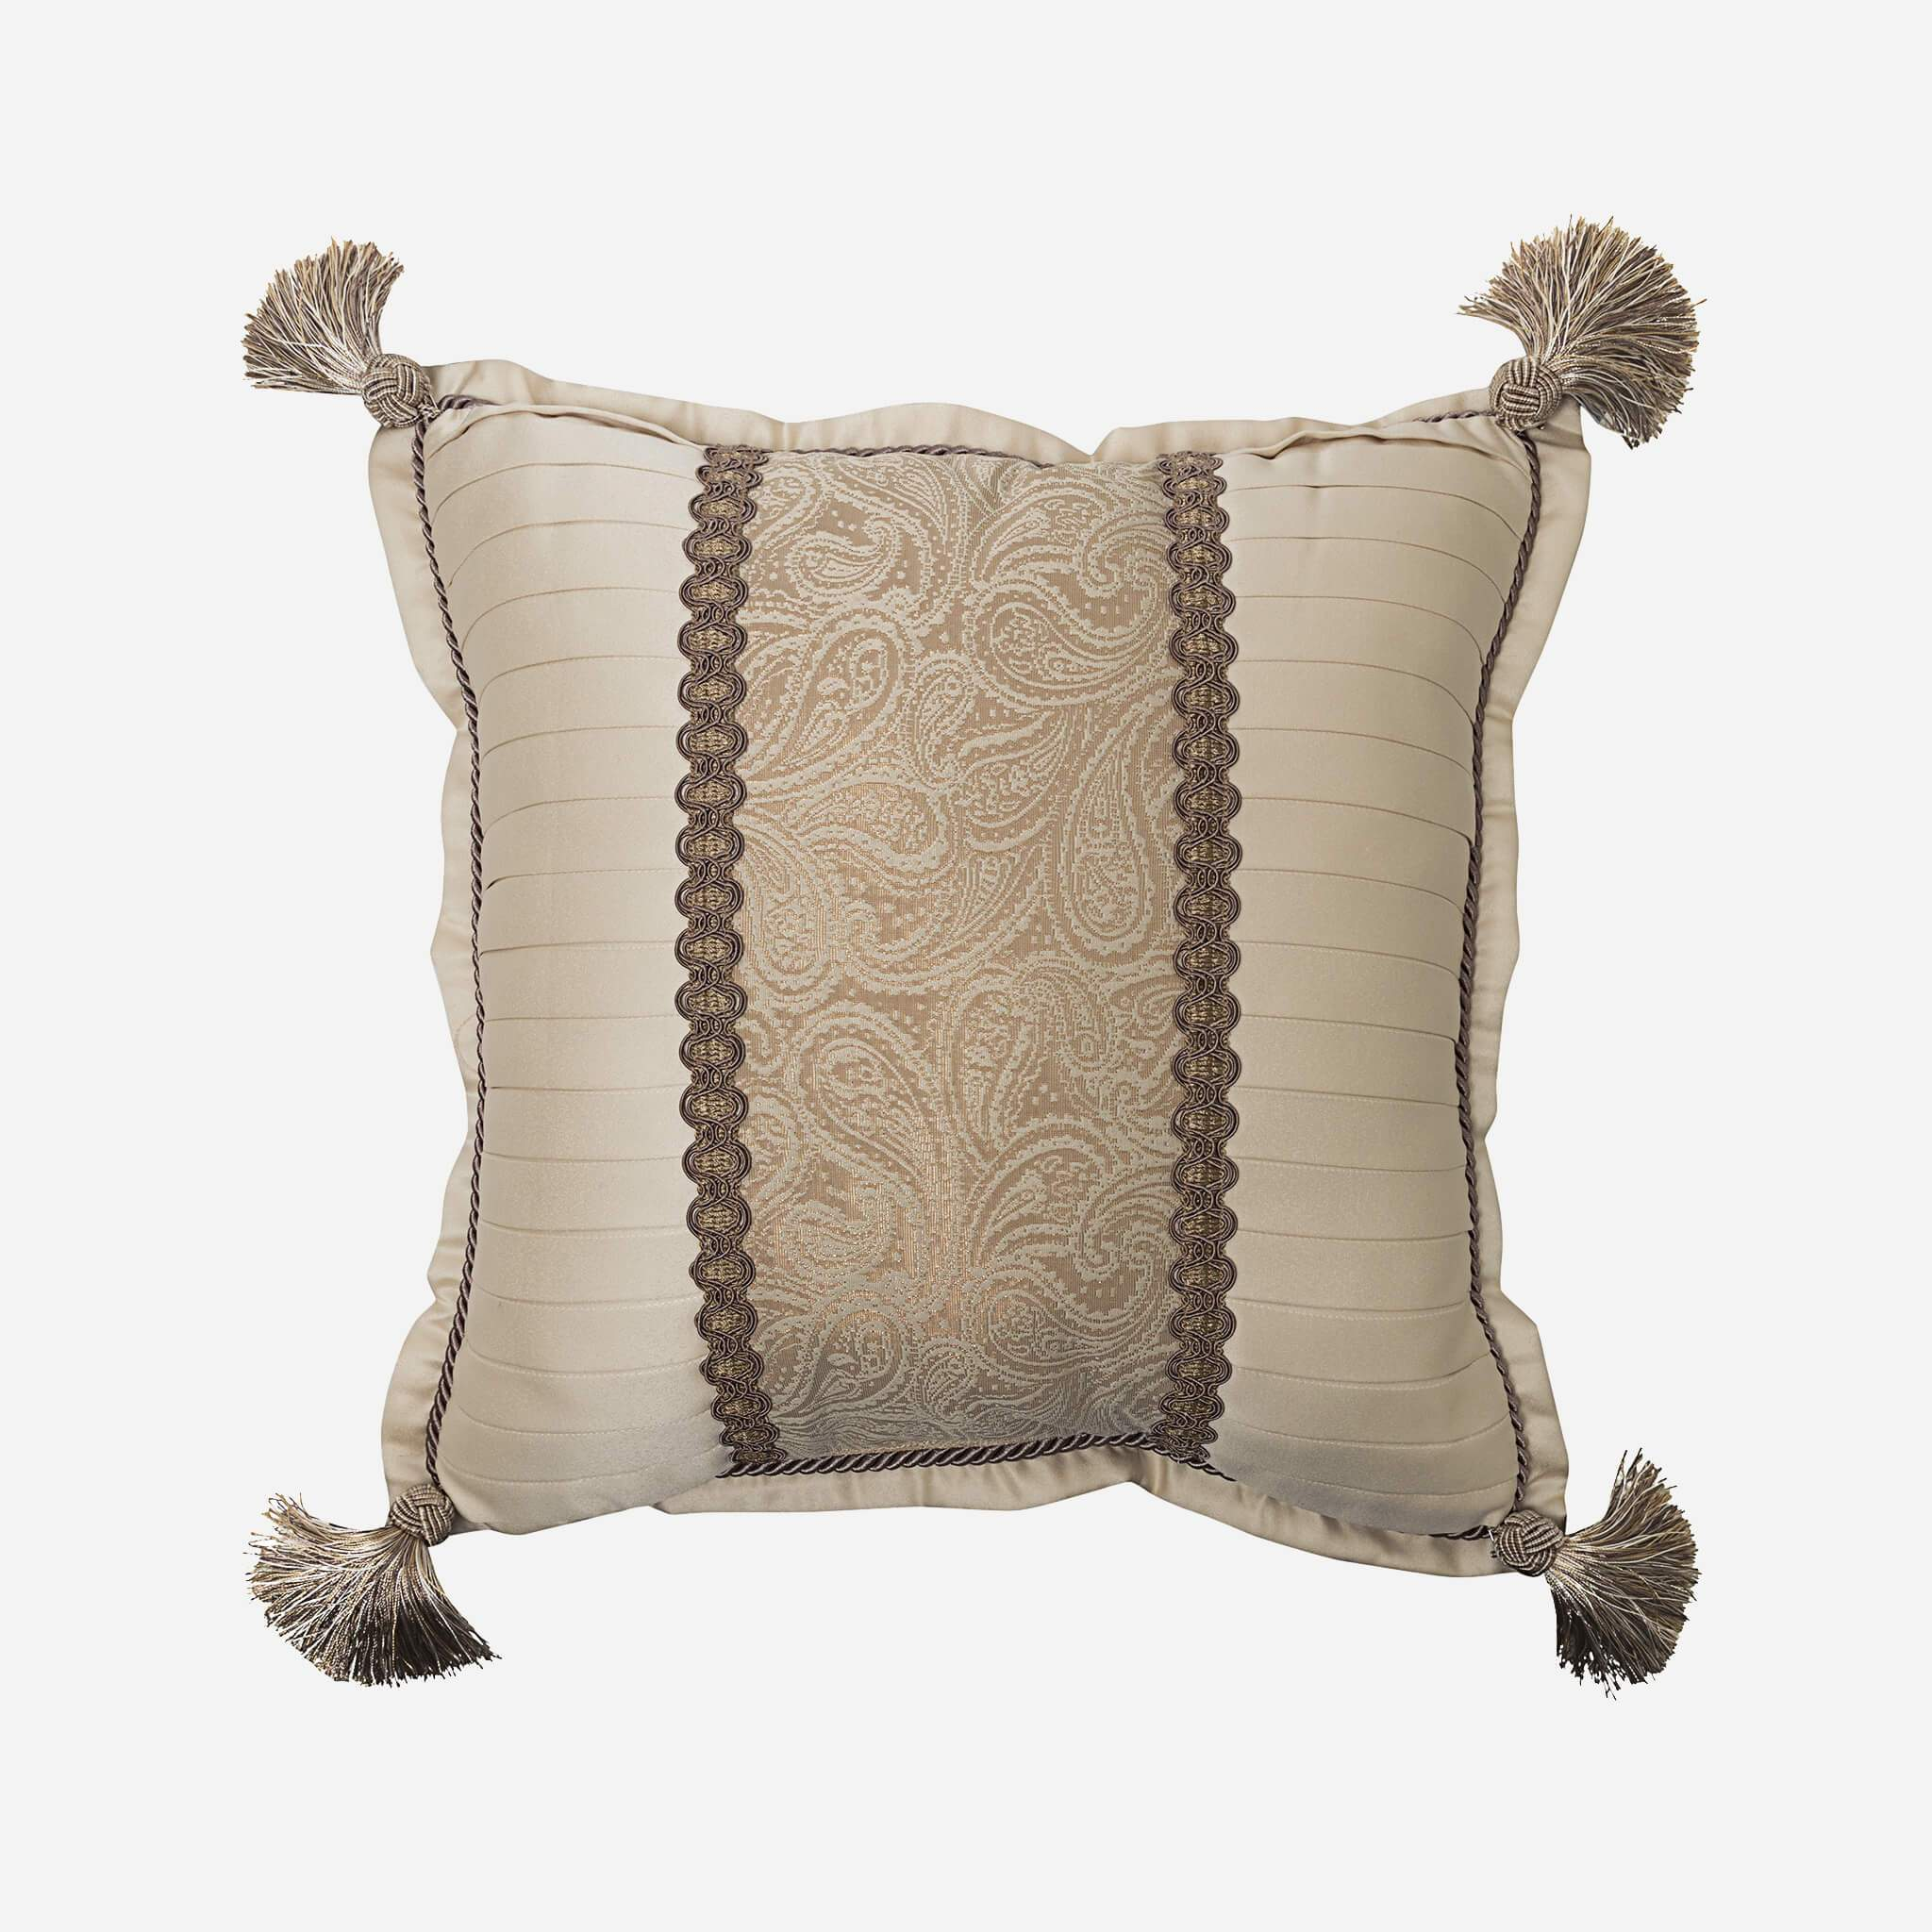 "Alexander 16"" x 16"" Reversible Fashion Pillow With Tassels"